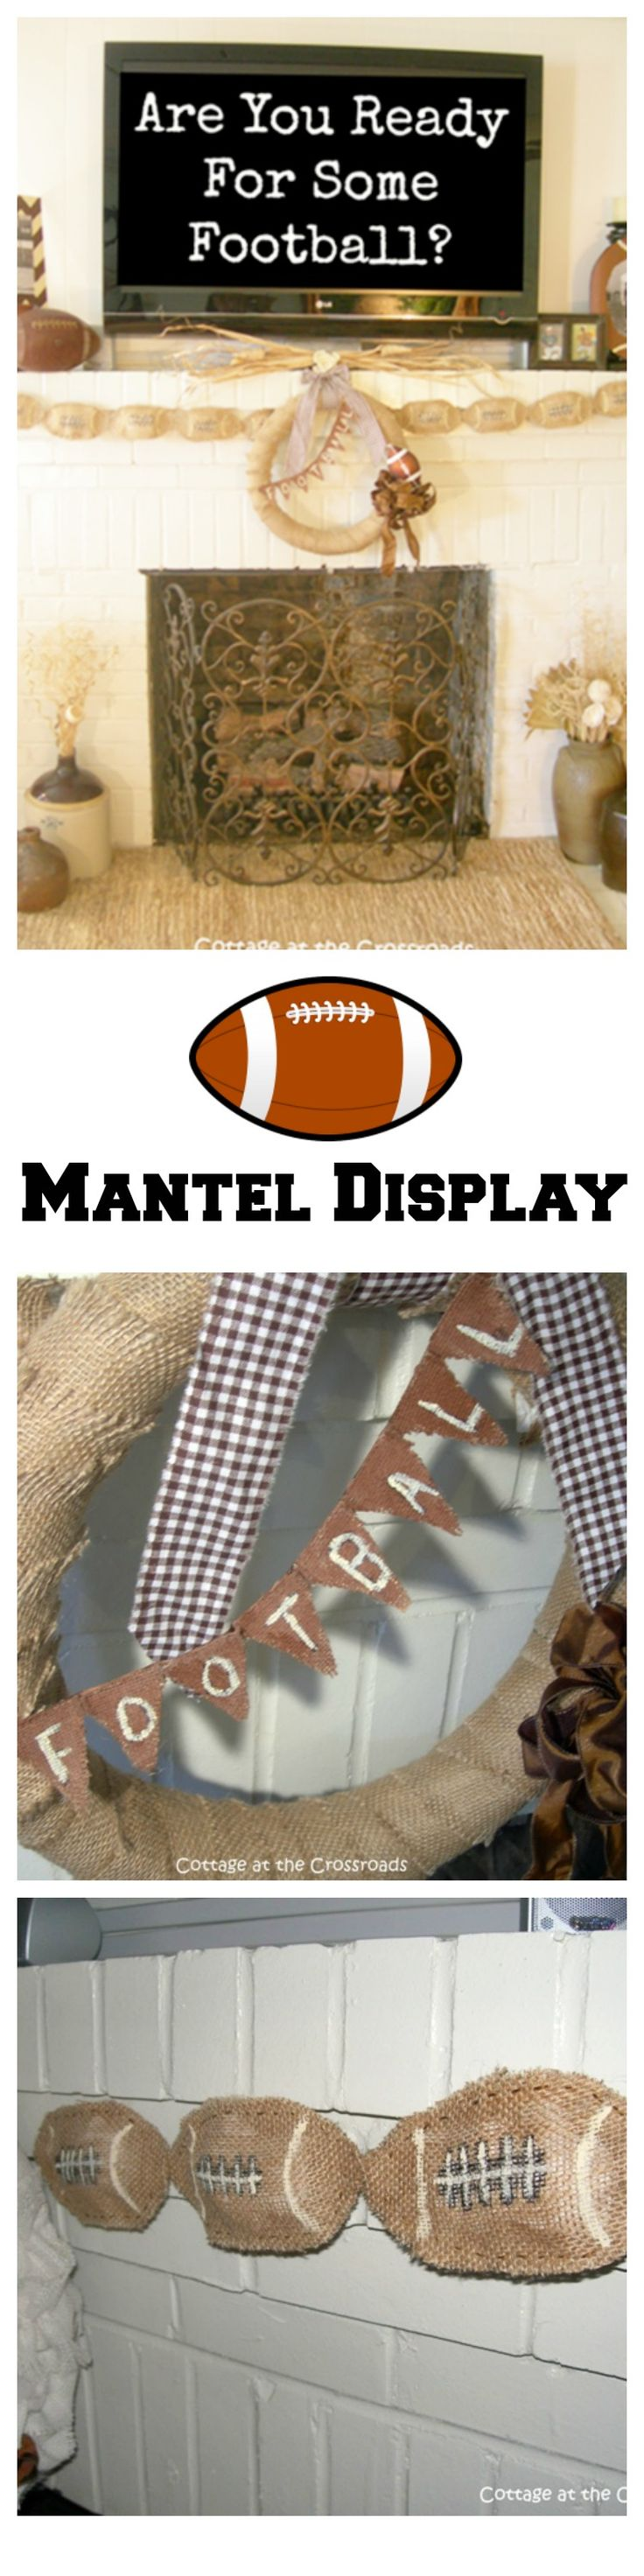 A fall football mantel display from the blog Cottage at the Crossroads